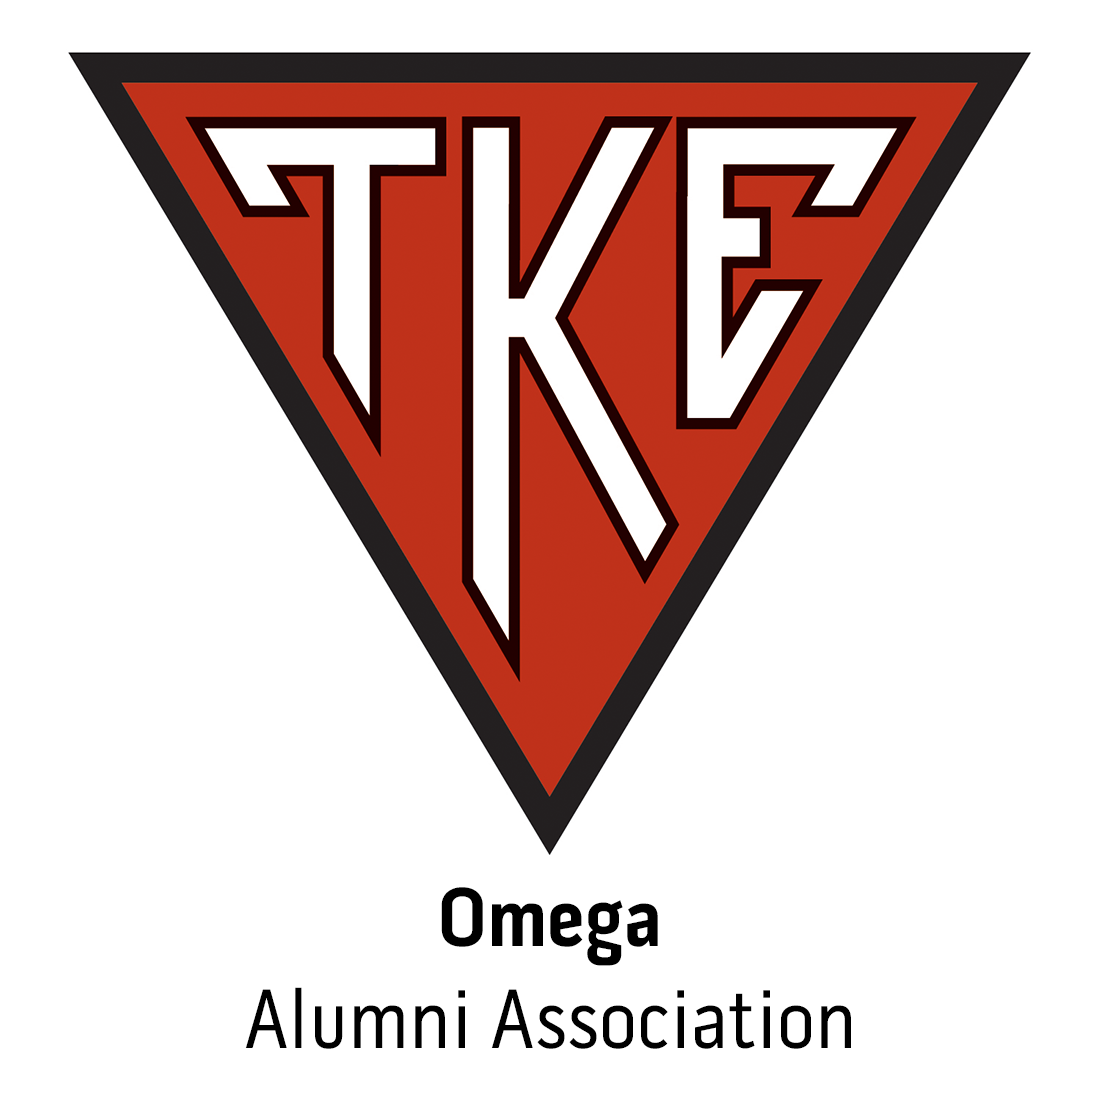 Omega Alumni Association at Albion College